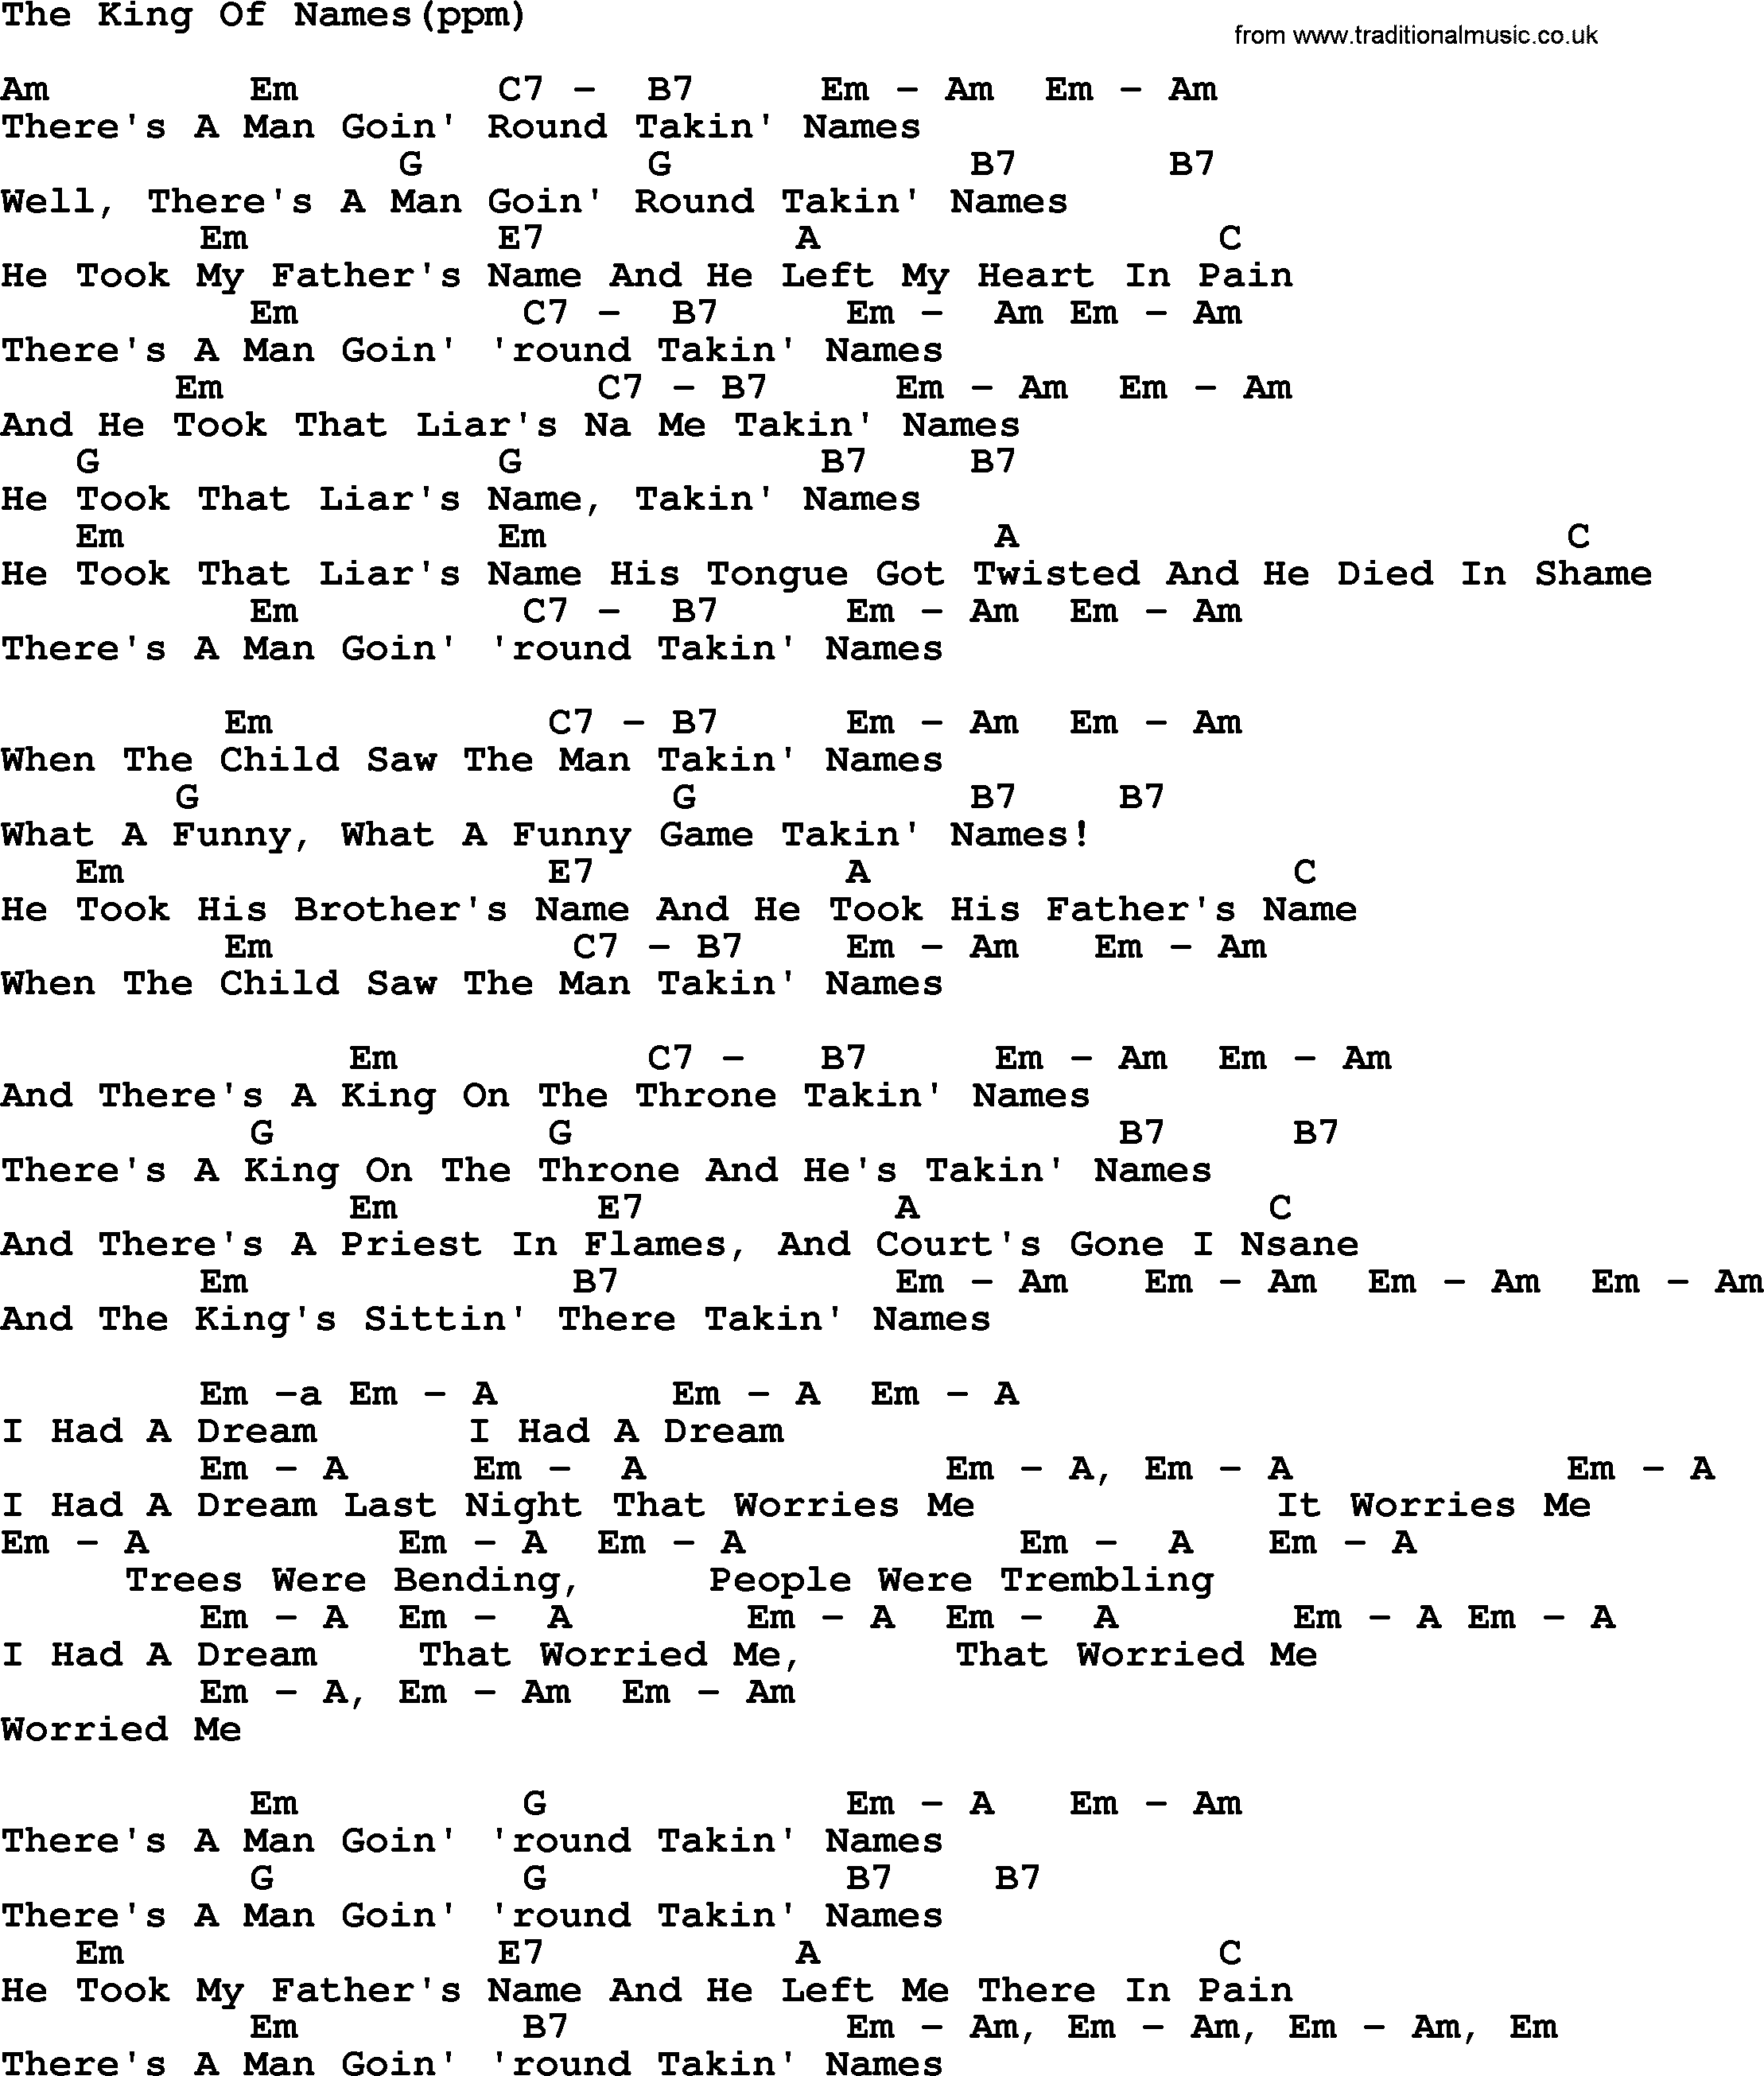 Peter, Paul and Mary song The King Of Names, lyrics and chords